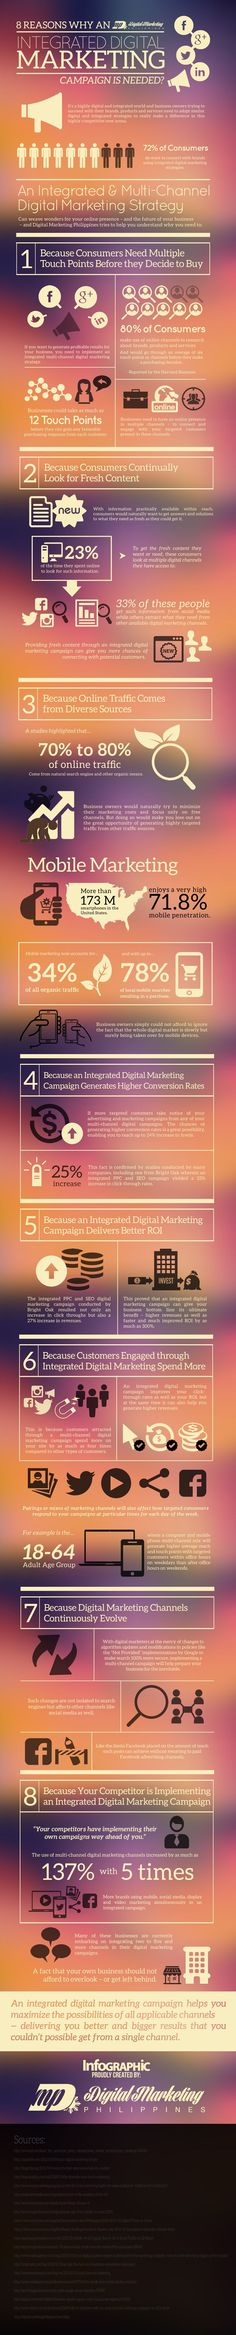 8 Reasons Why An Integrated Digital Marketing Campaign Is Needed? #Infographic